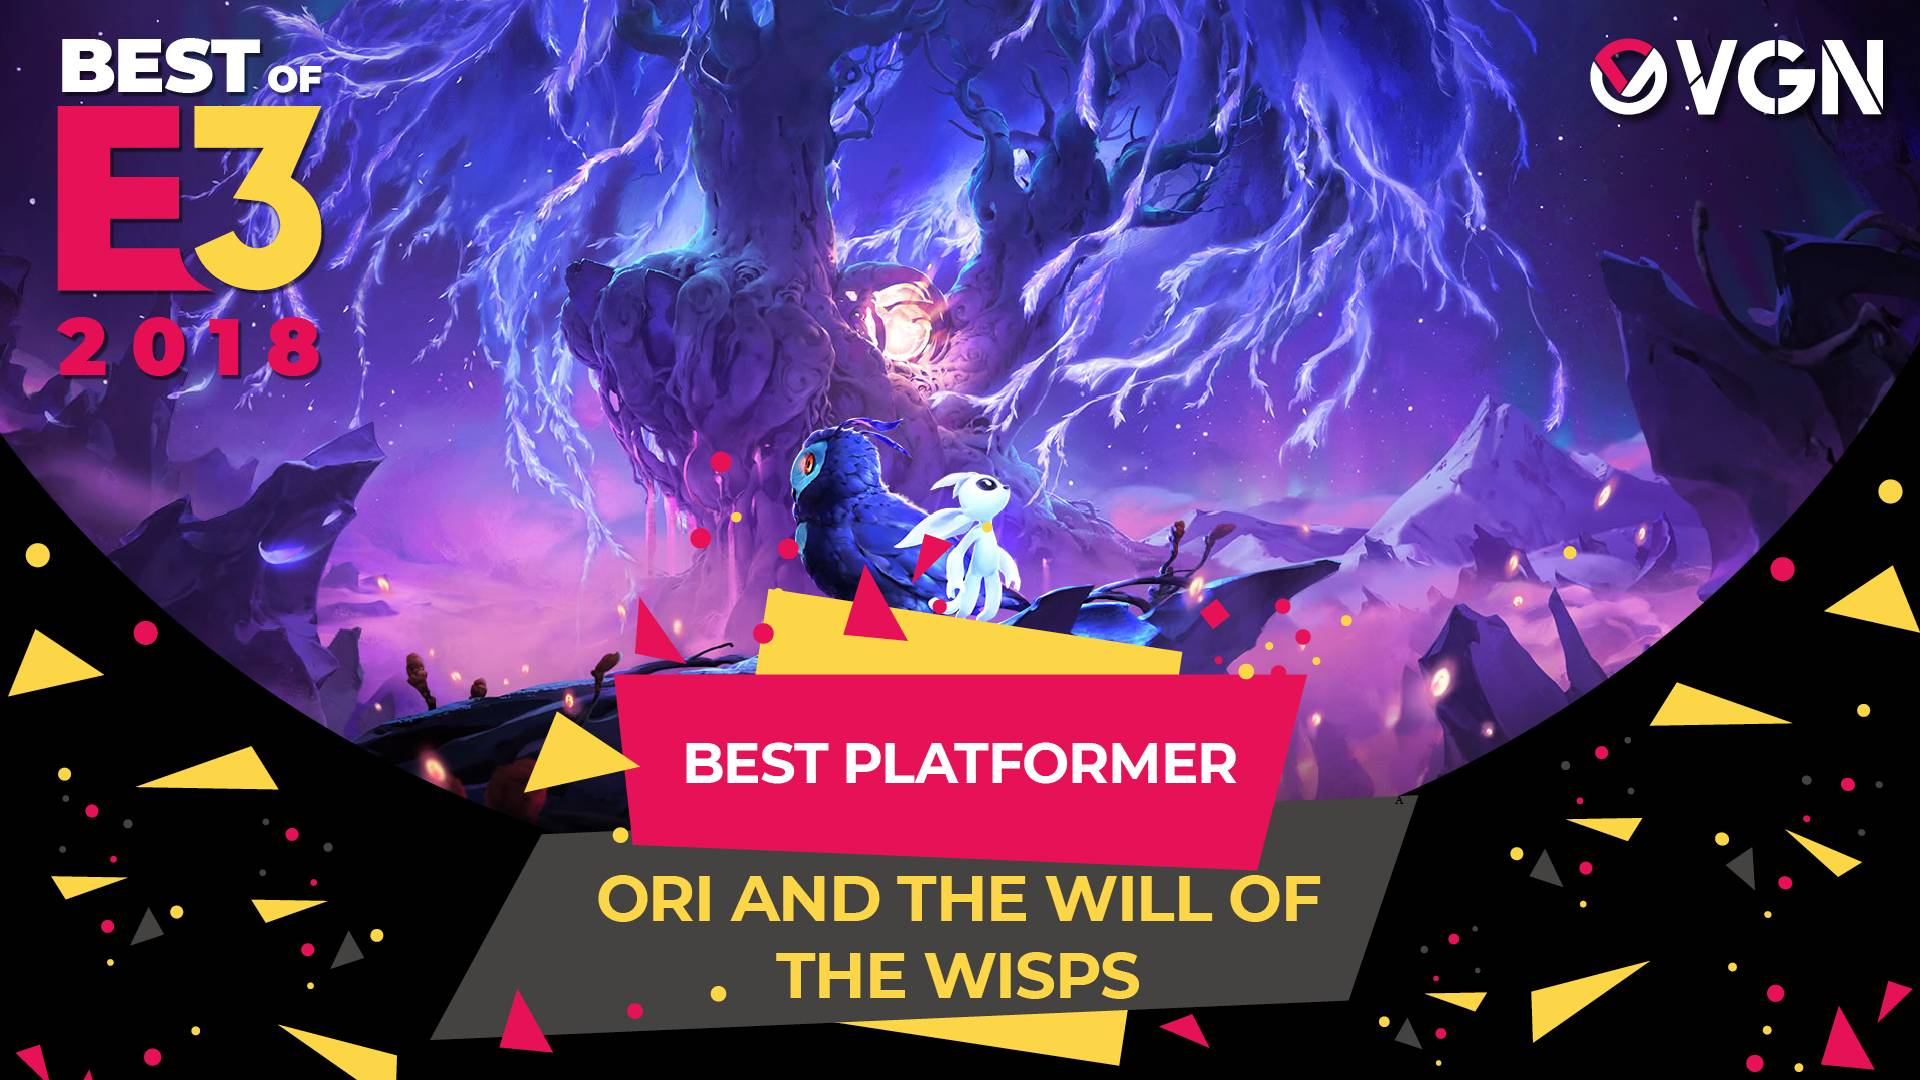 E3 2018 - Best Platformer - Ori and the Will of the Wisps